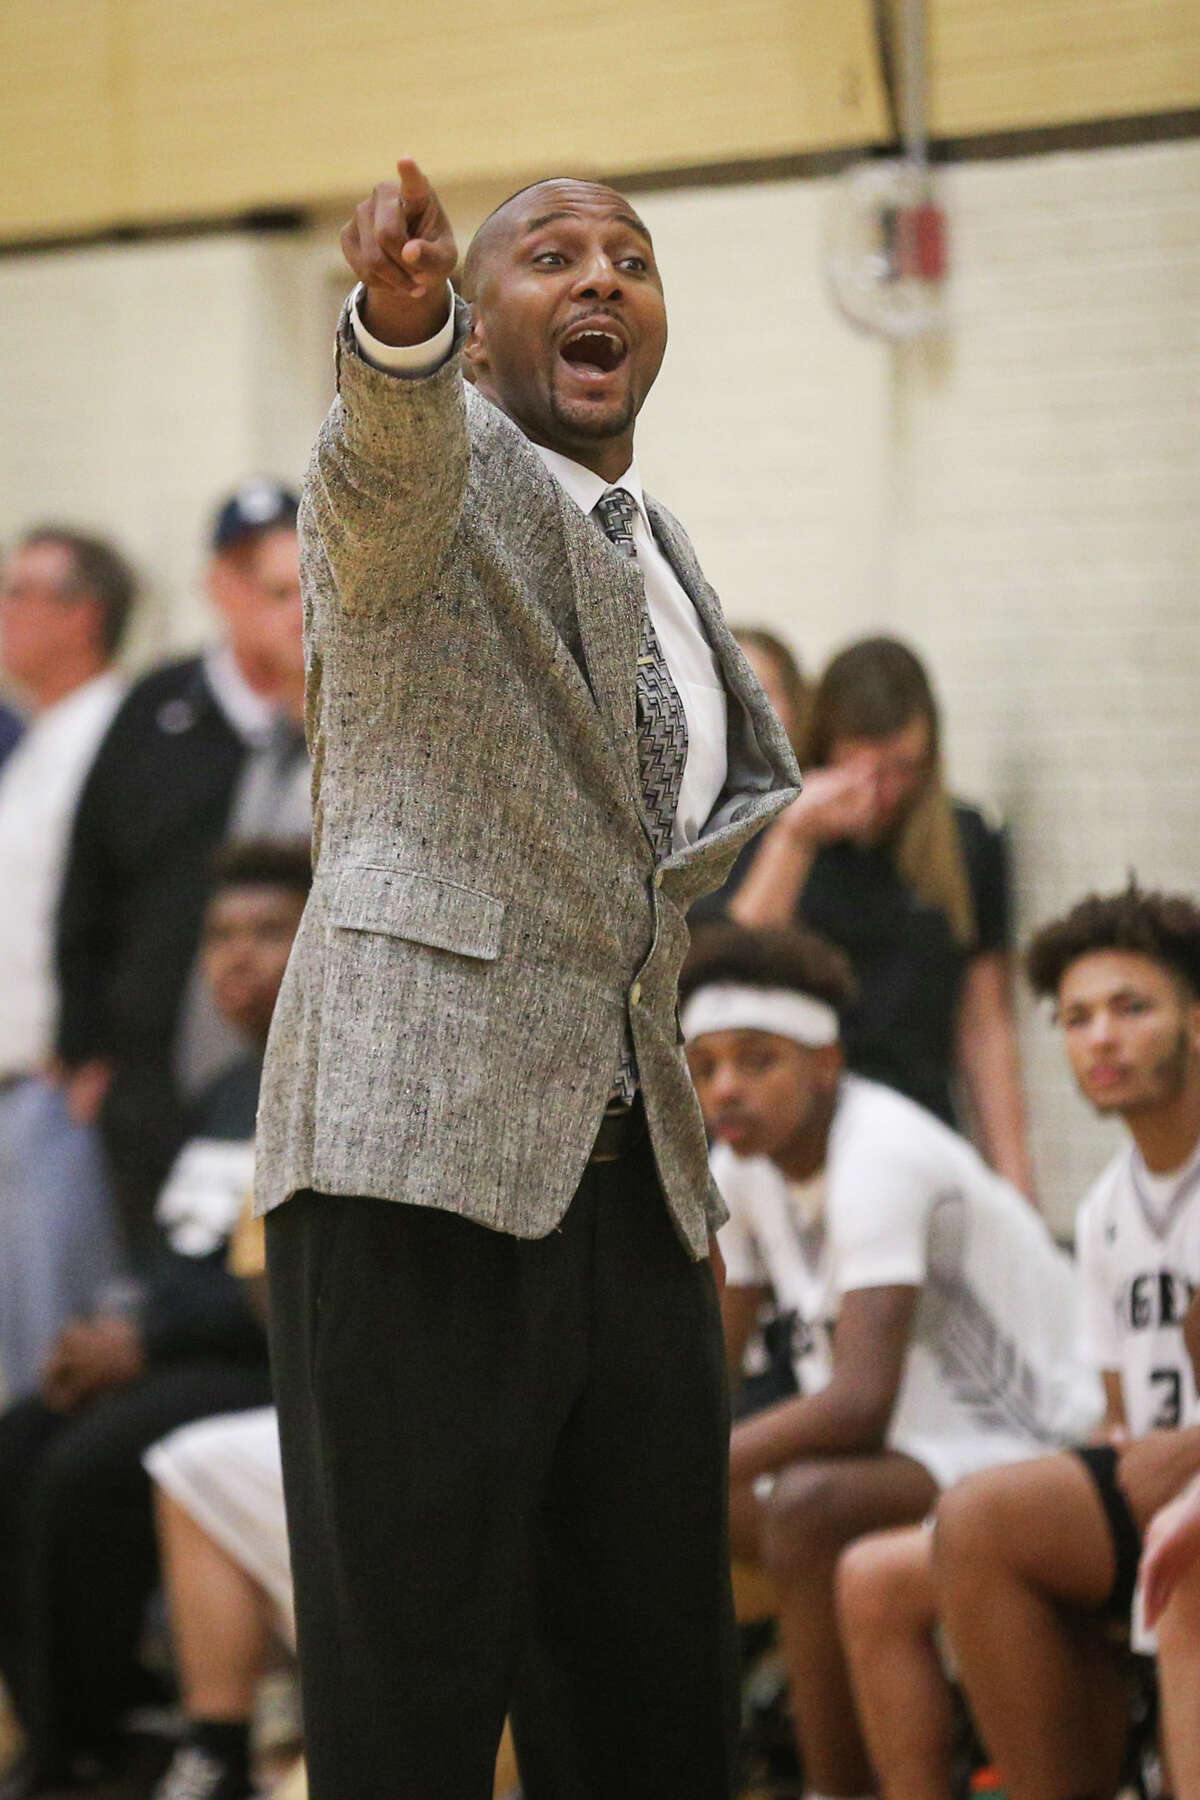 Conroe head coach Daryl Mason guides his team from the sideline during the varsity boys basketball game against Oak Ridge on Friday, Jan. 13, 2017, at Conroe High School. (Michael Minasi / Chronicle)